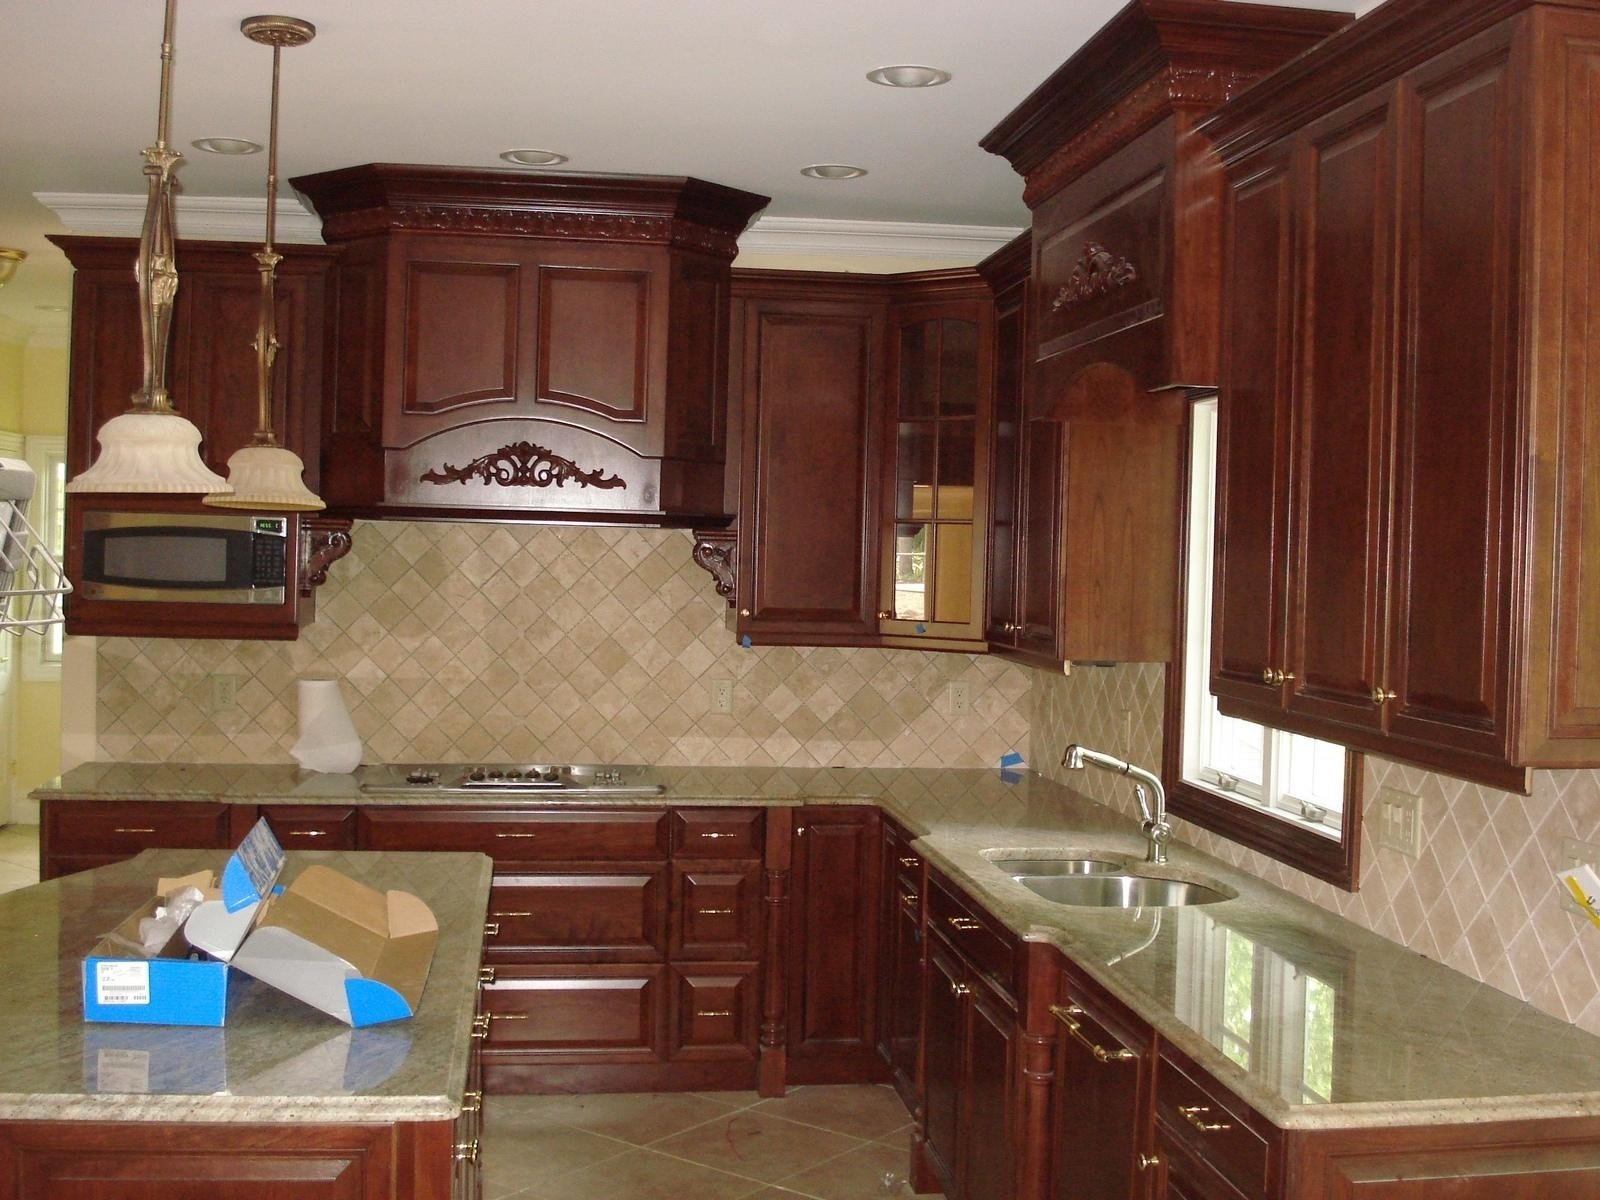 10 Beautiful Kitchen Cabinet Crown Molding Ideas gorgeous white maple kitchen cabinets ideas with crown molding 2020